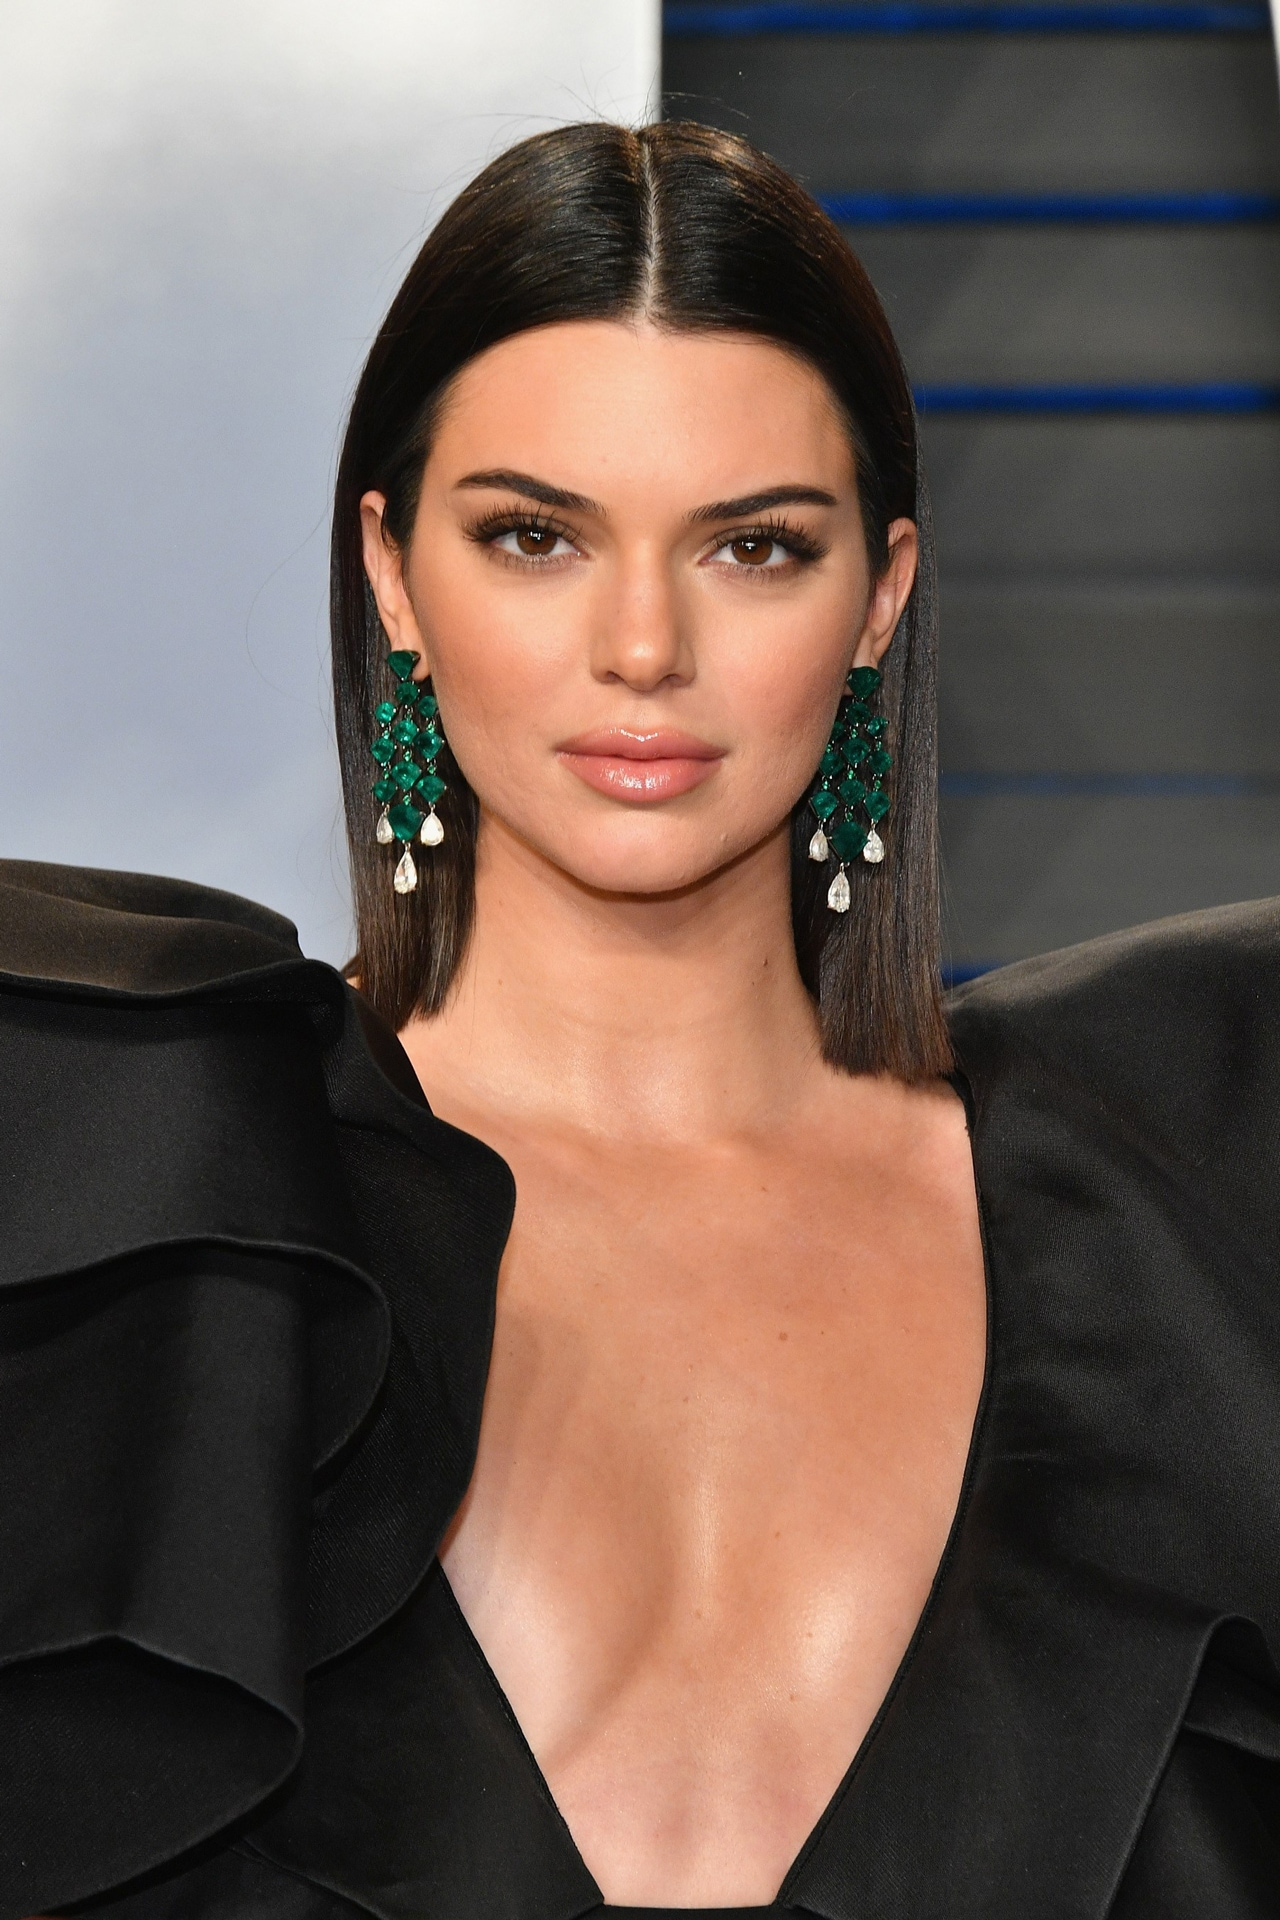 photo Kendall Jenner says she works just as hard as the original '90s supermodels